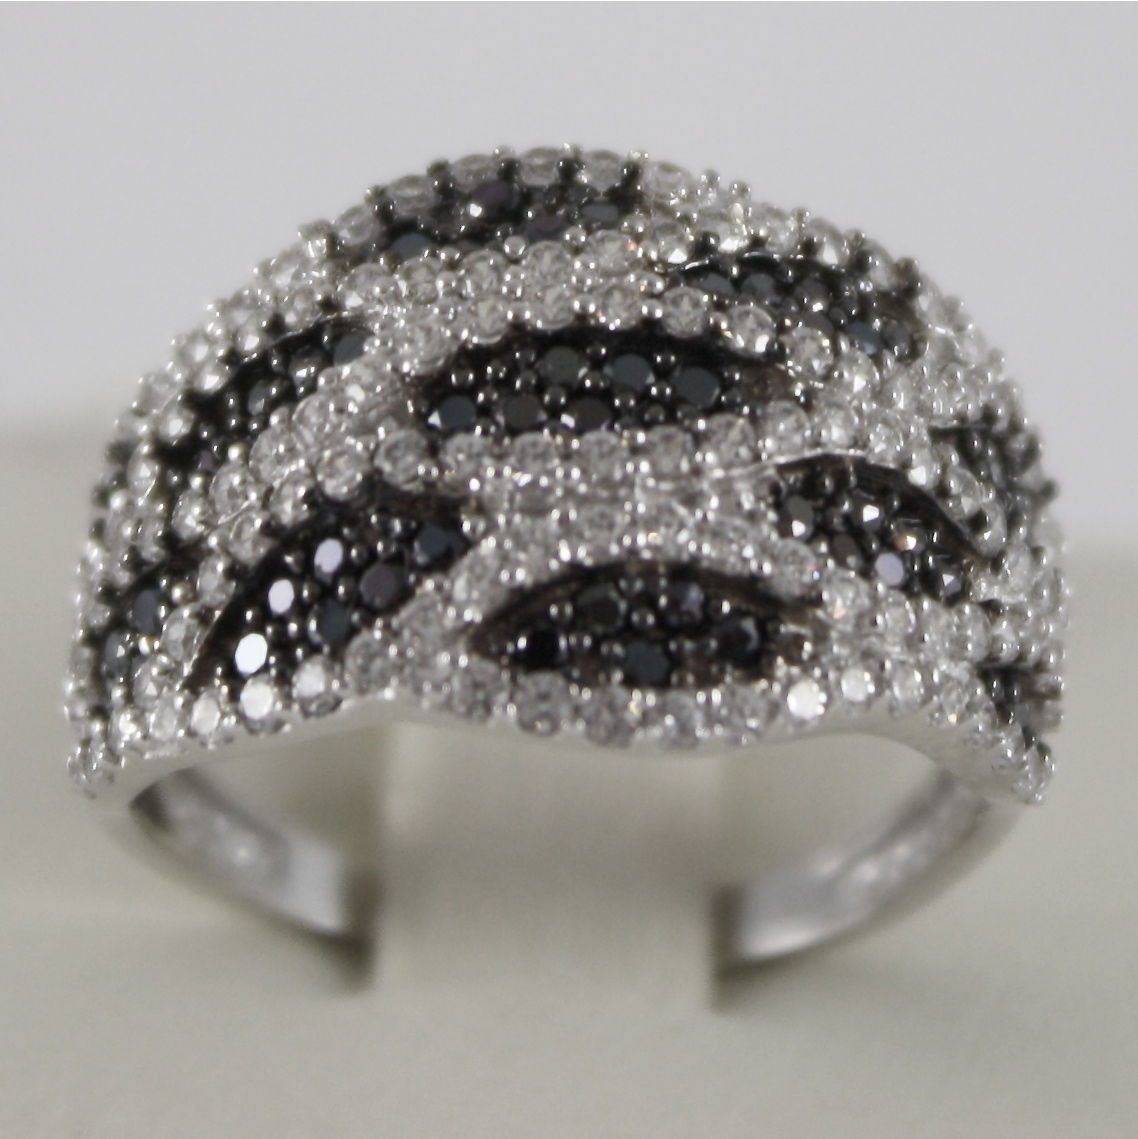 SOLID 18K WHITE GOLD RING WITH WHITE AND BLACK ZIRCONIA, MADE IN ITALY